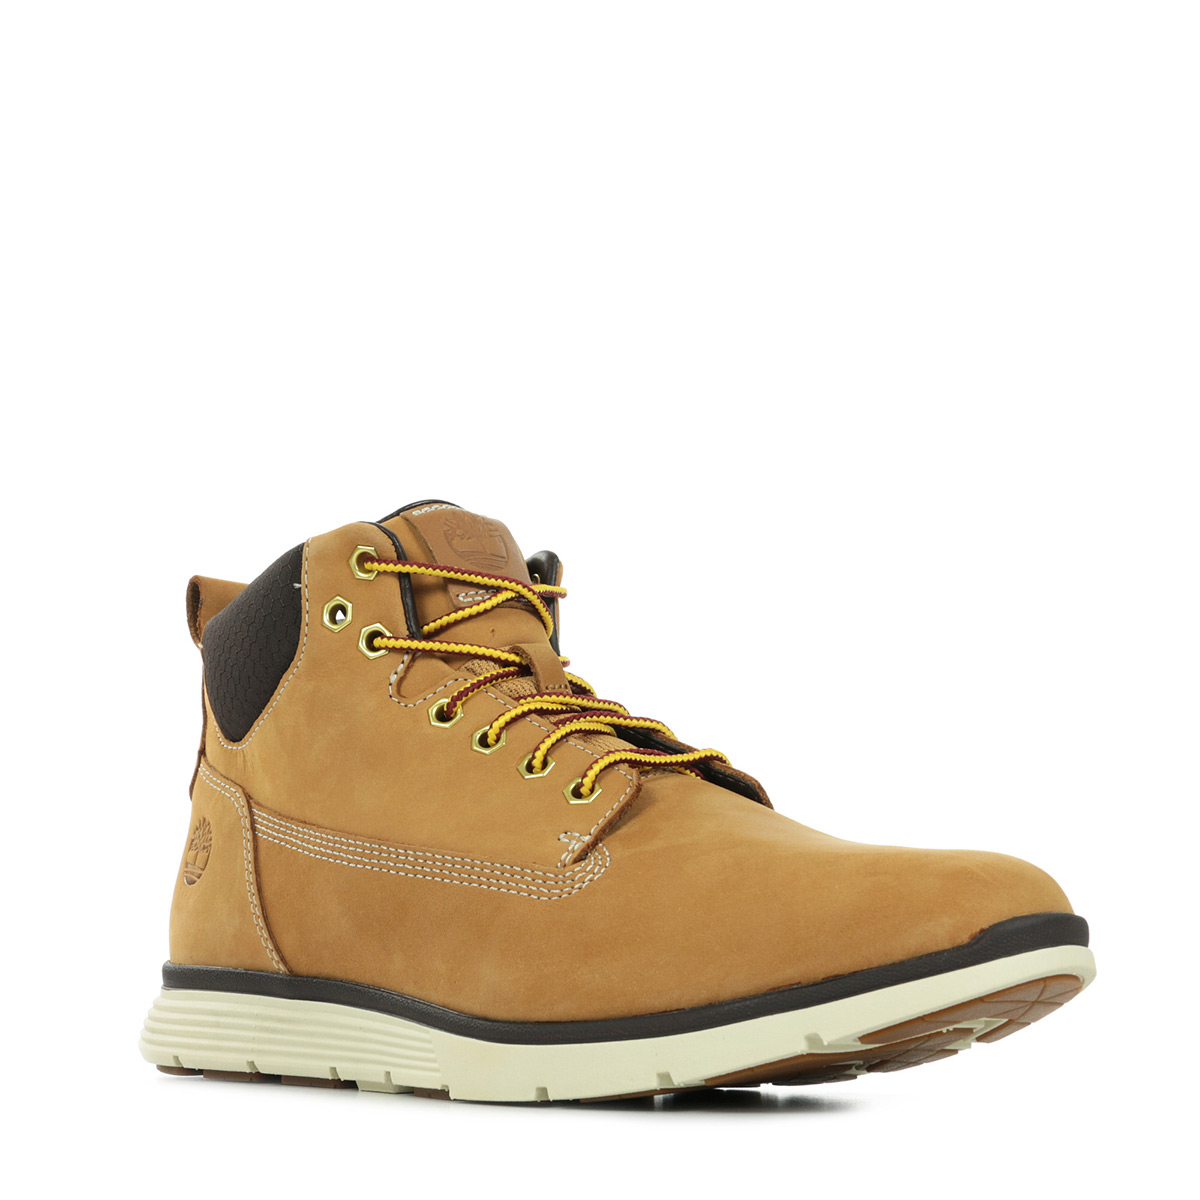 CHAUSSURES TIMBERLAND KILLINGTON CHUKKA WHEAT sSibUVSi